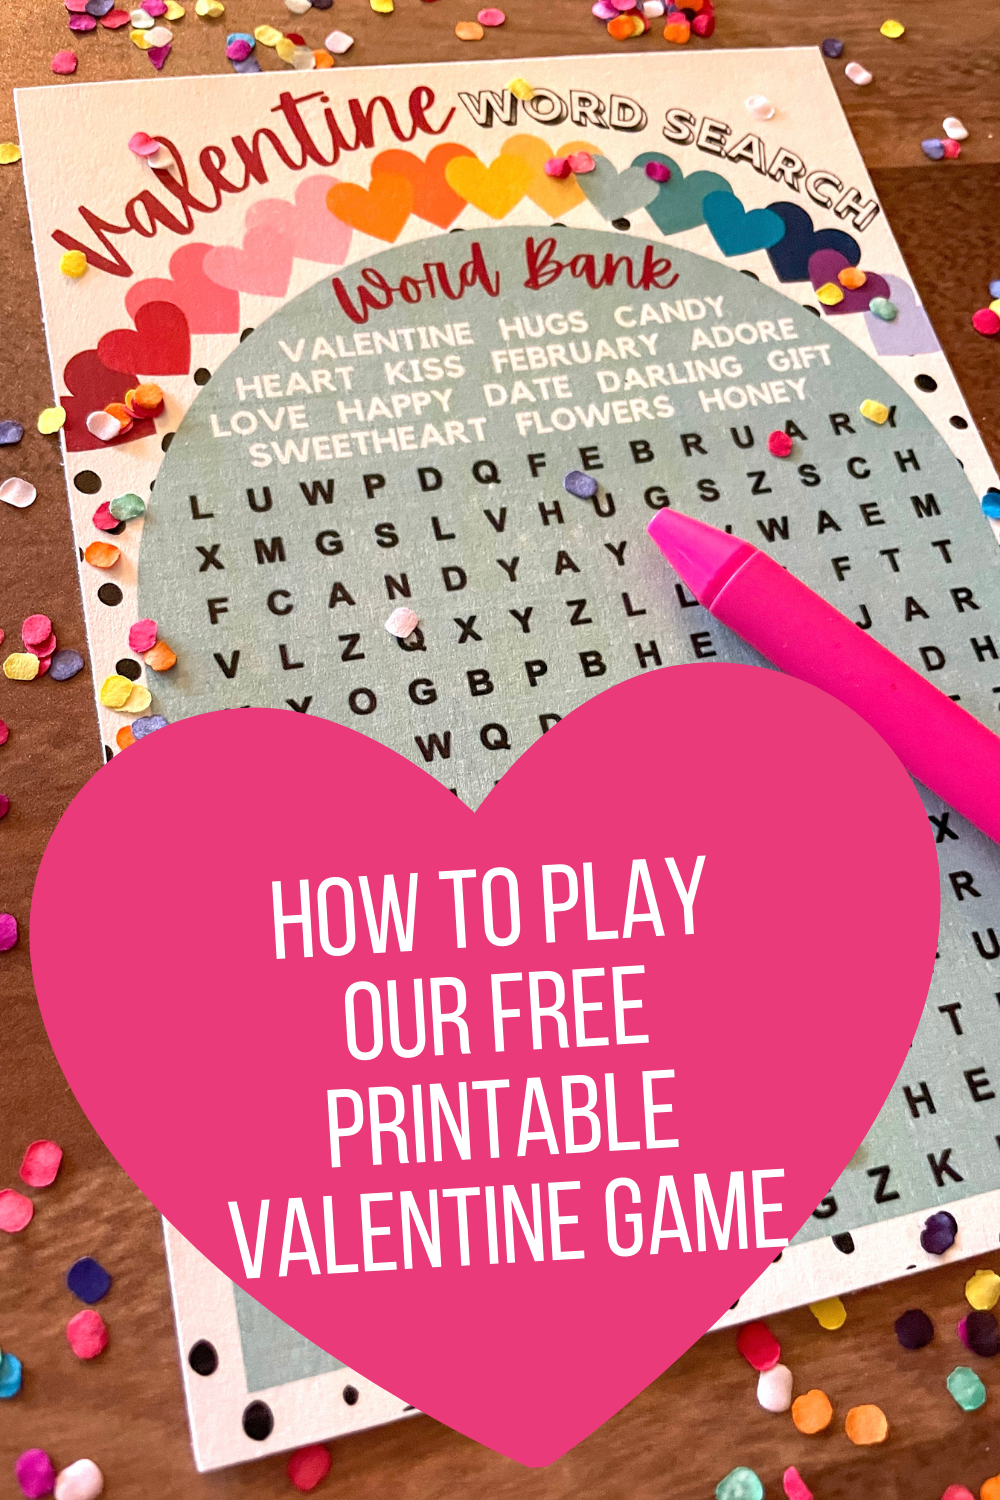 Free Printable Valentine Game classroom valentine party games to print.